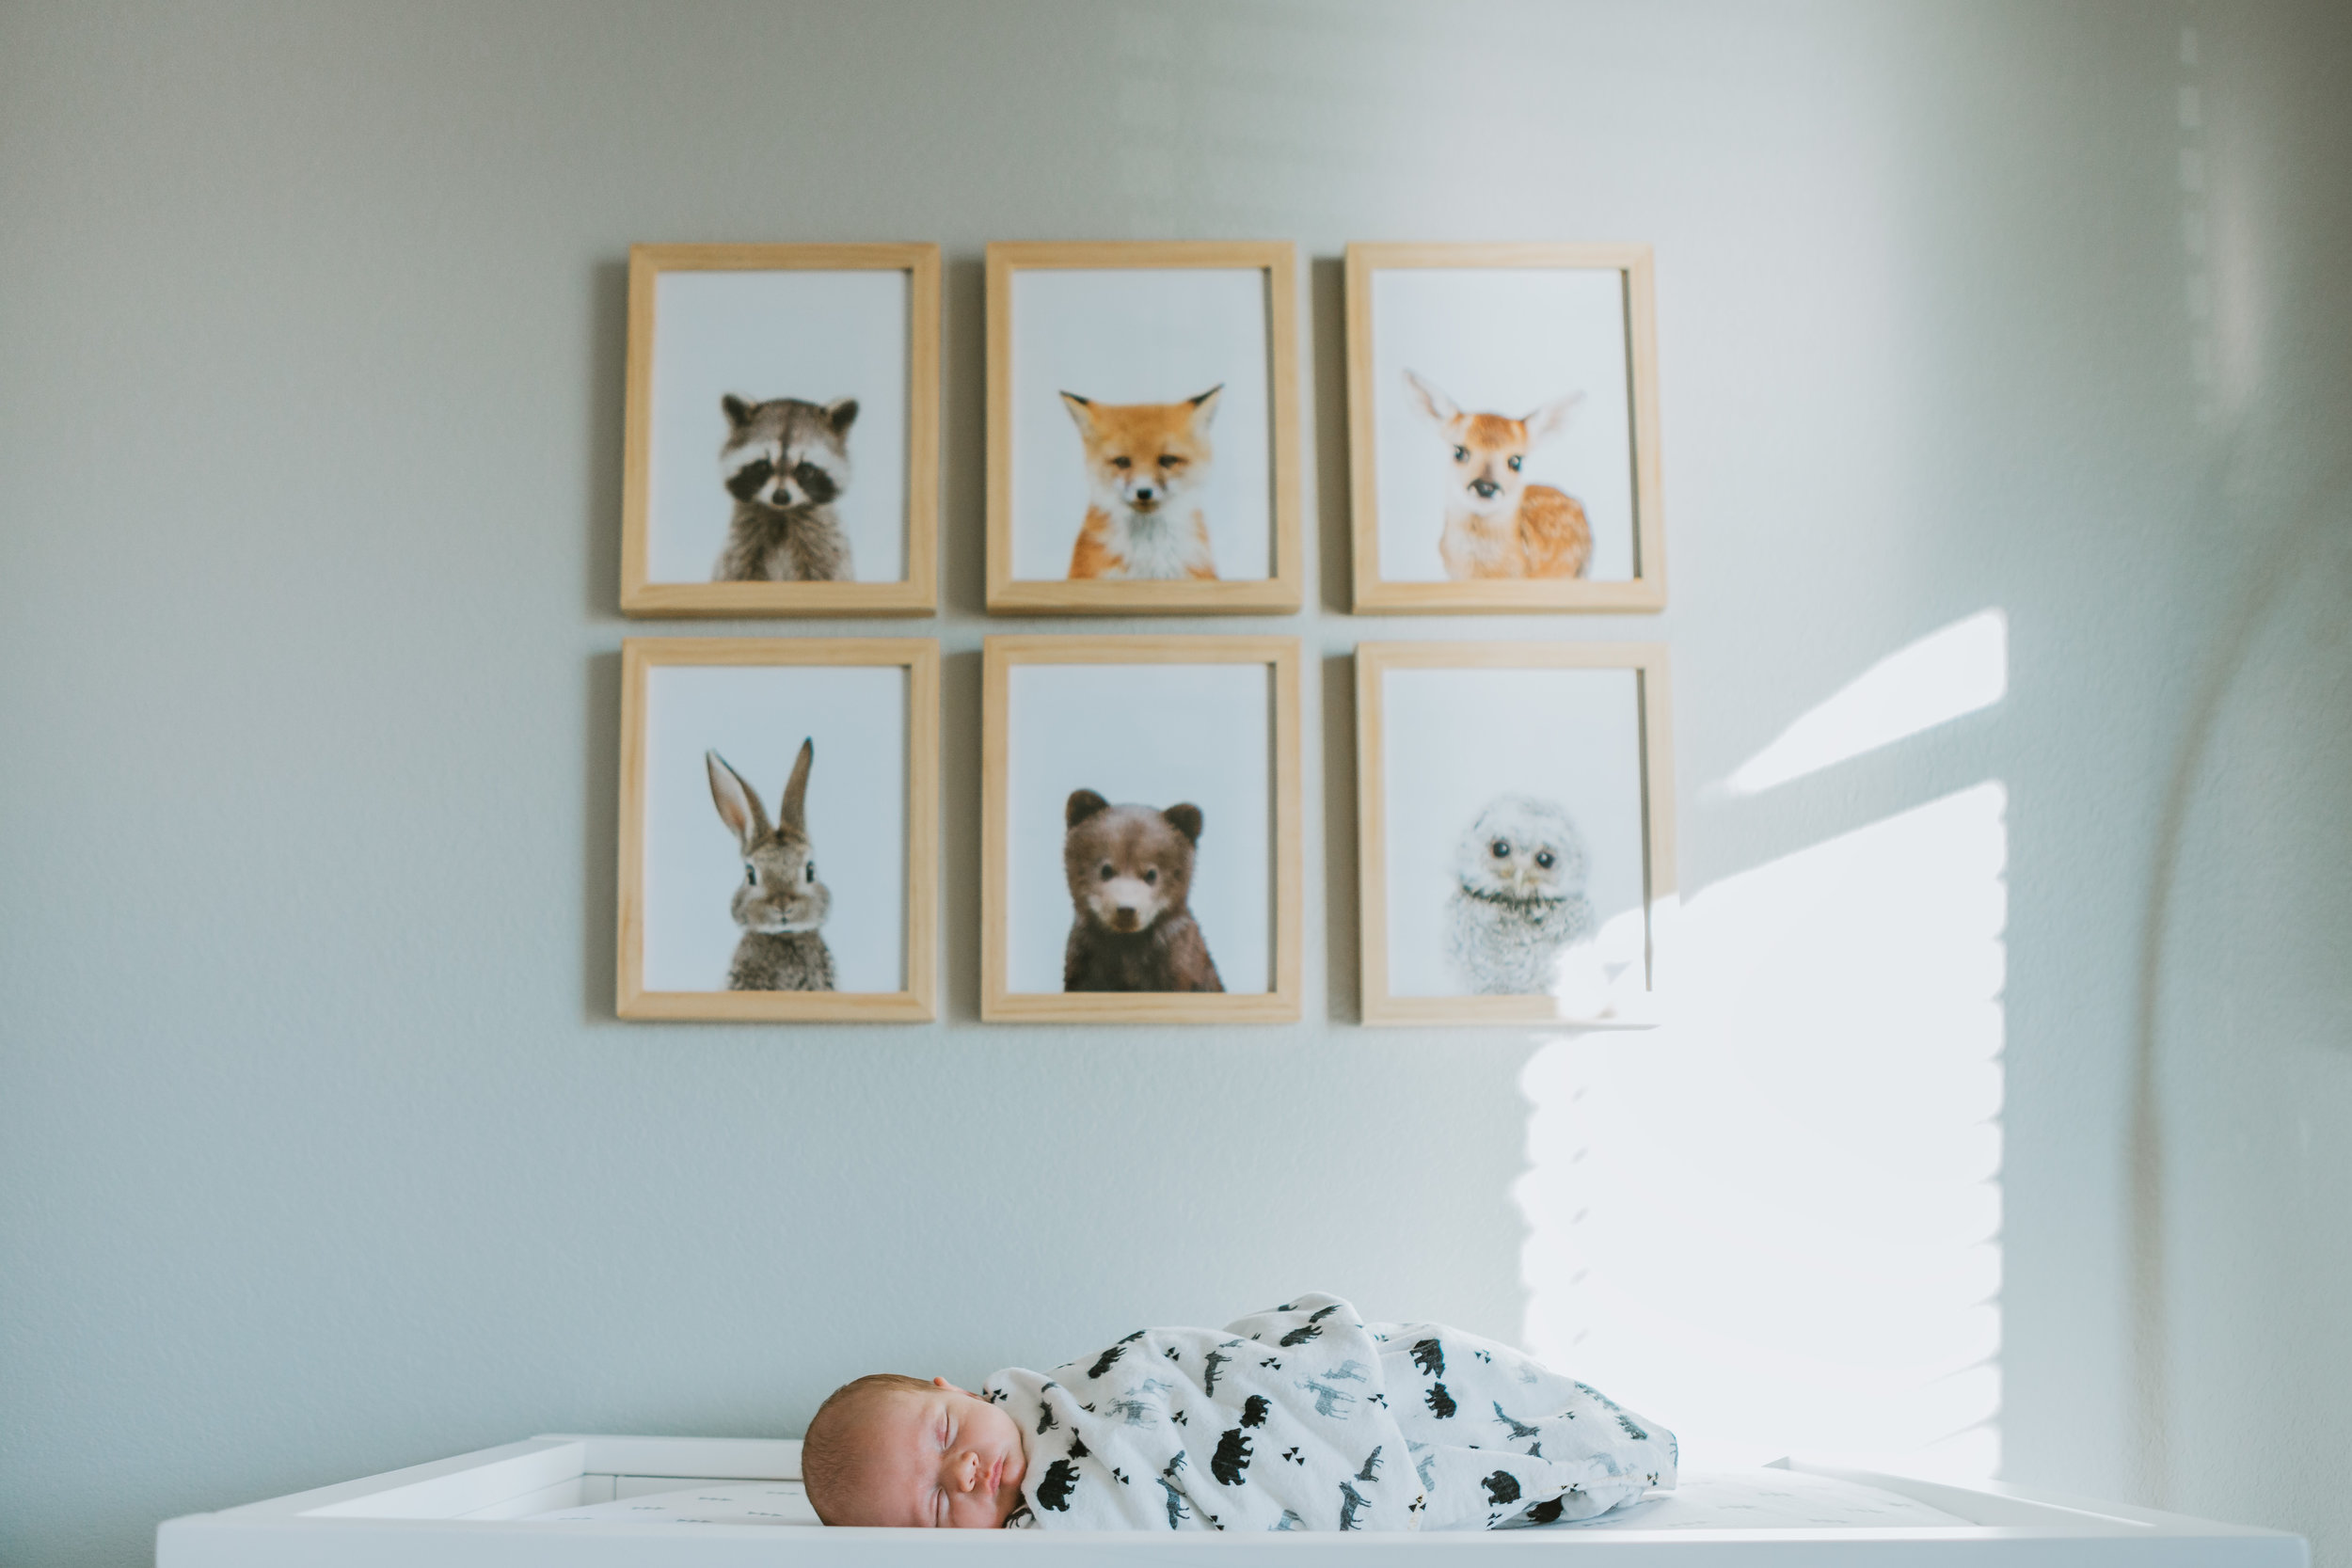 New baby boy on changing table with wall art on the wall of the nursery behind him #tealawardphotography #texasnewbornphotographysession #amarillophotographer #amarilloenewbornphotographer #emotionalphotography #lifestylephotography #inhomesession #lifestyles #newbaby #newfamilyofthree #sweetbaby #nurseryphotos